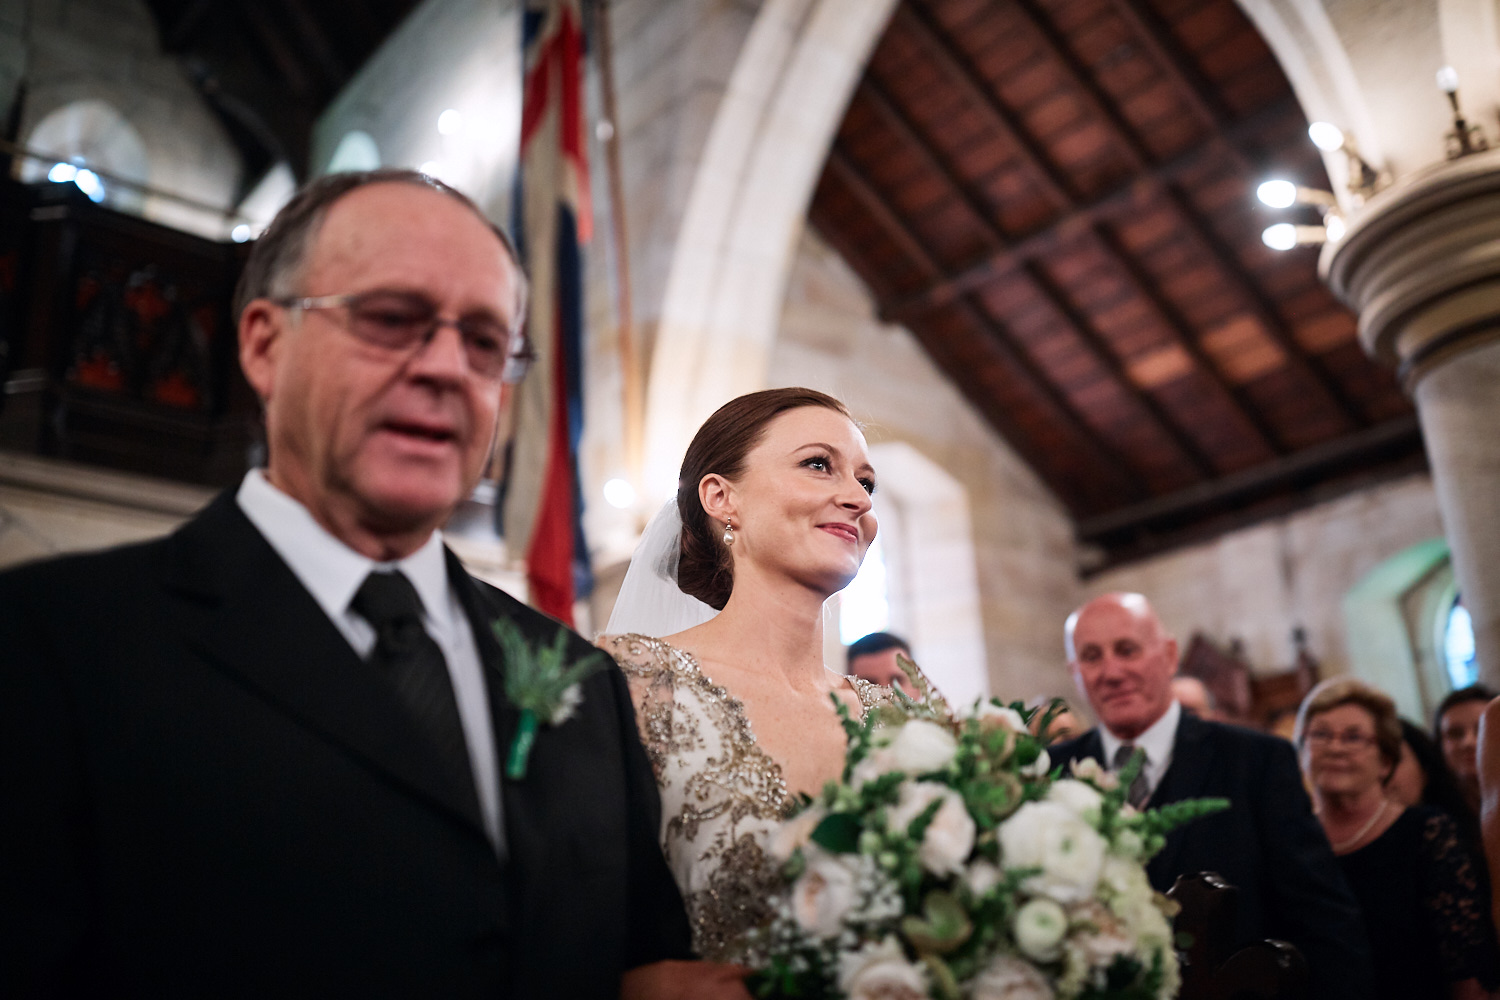 Bride smiling walking down aisle of St Marks Anglican Church, Darling Point